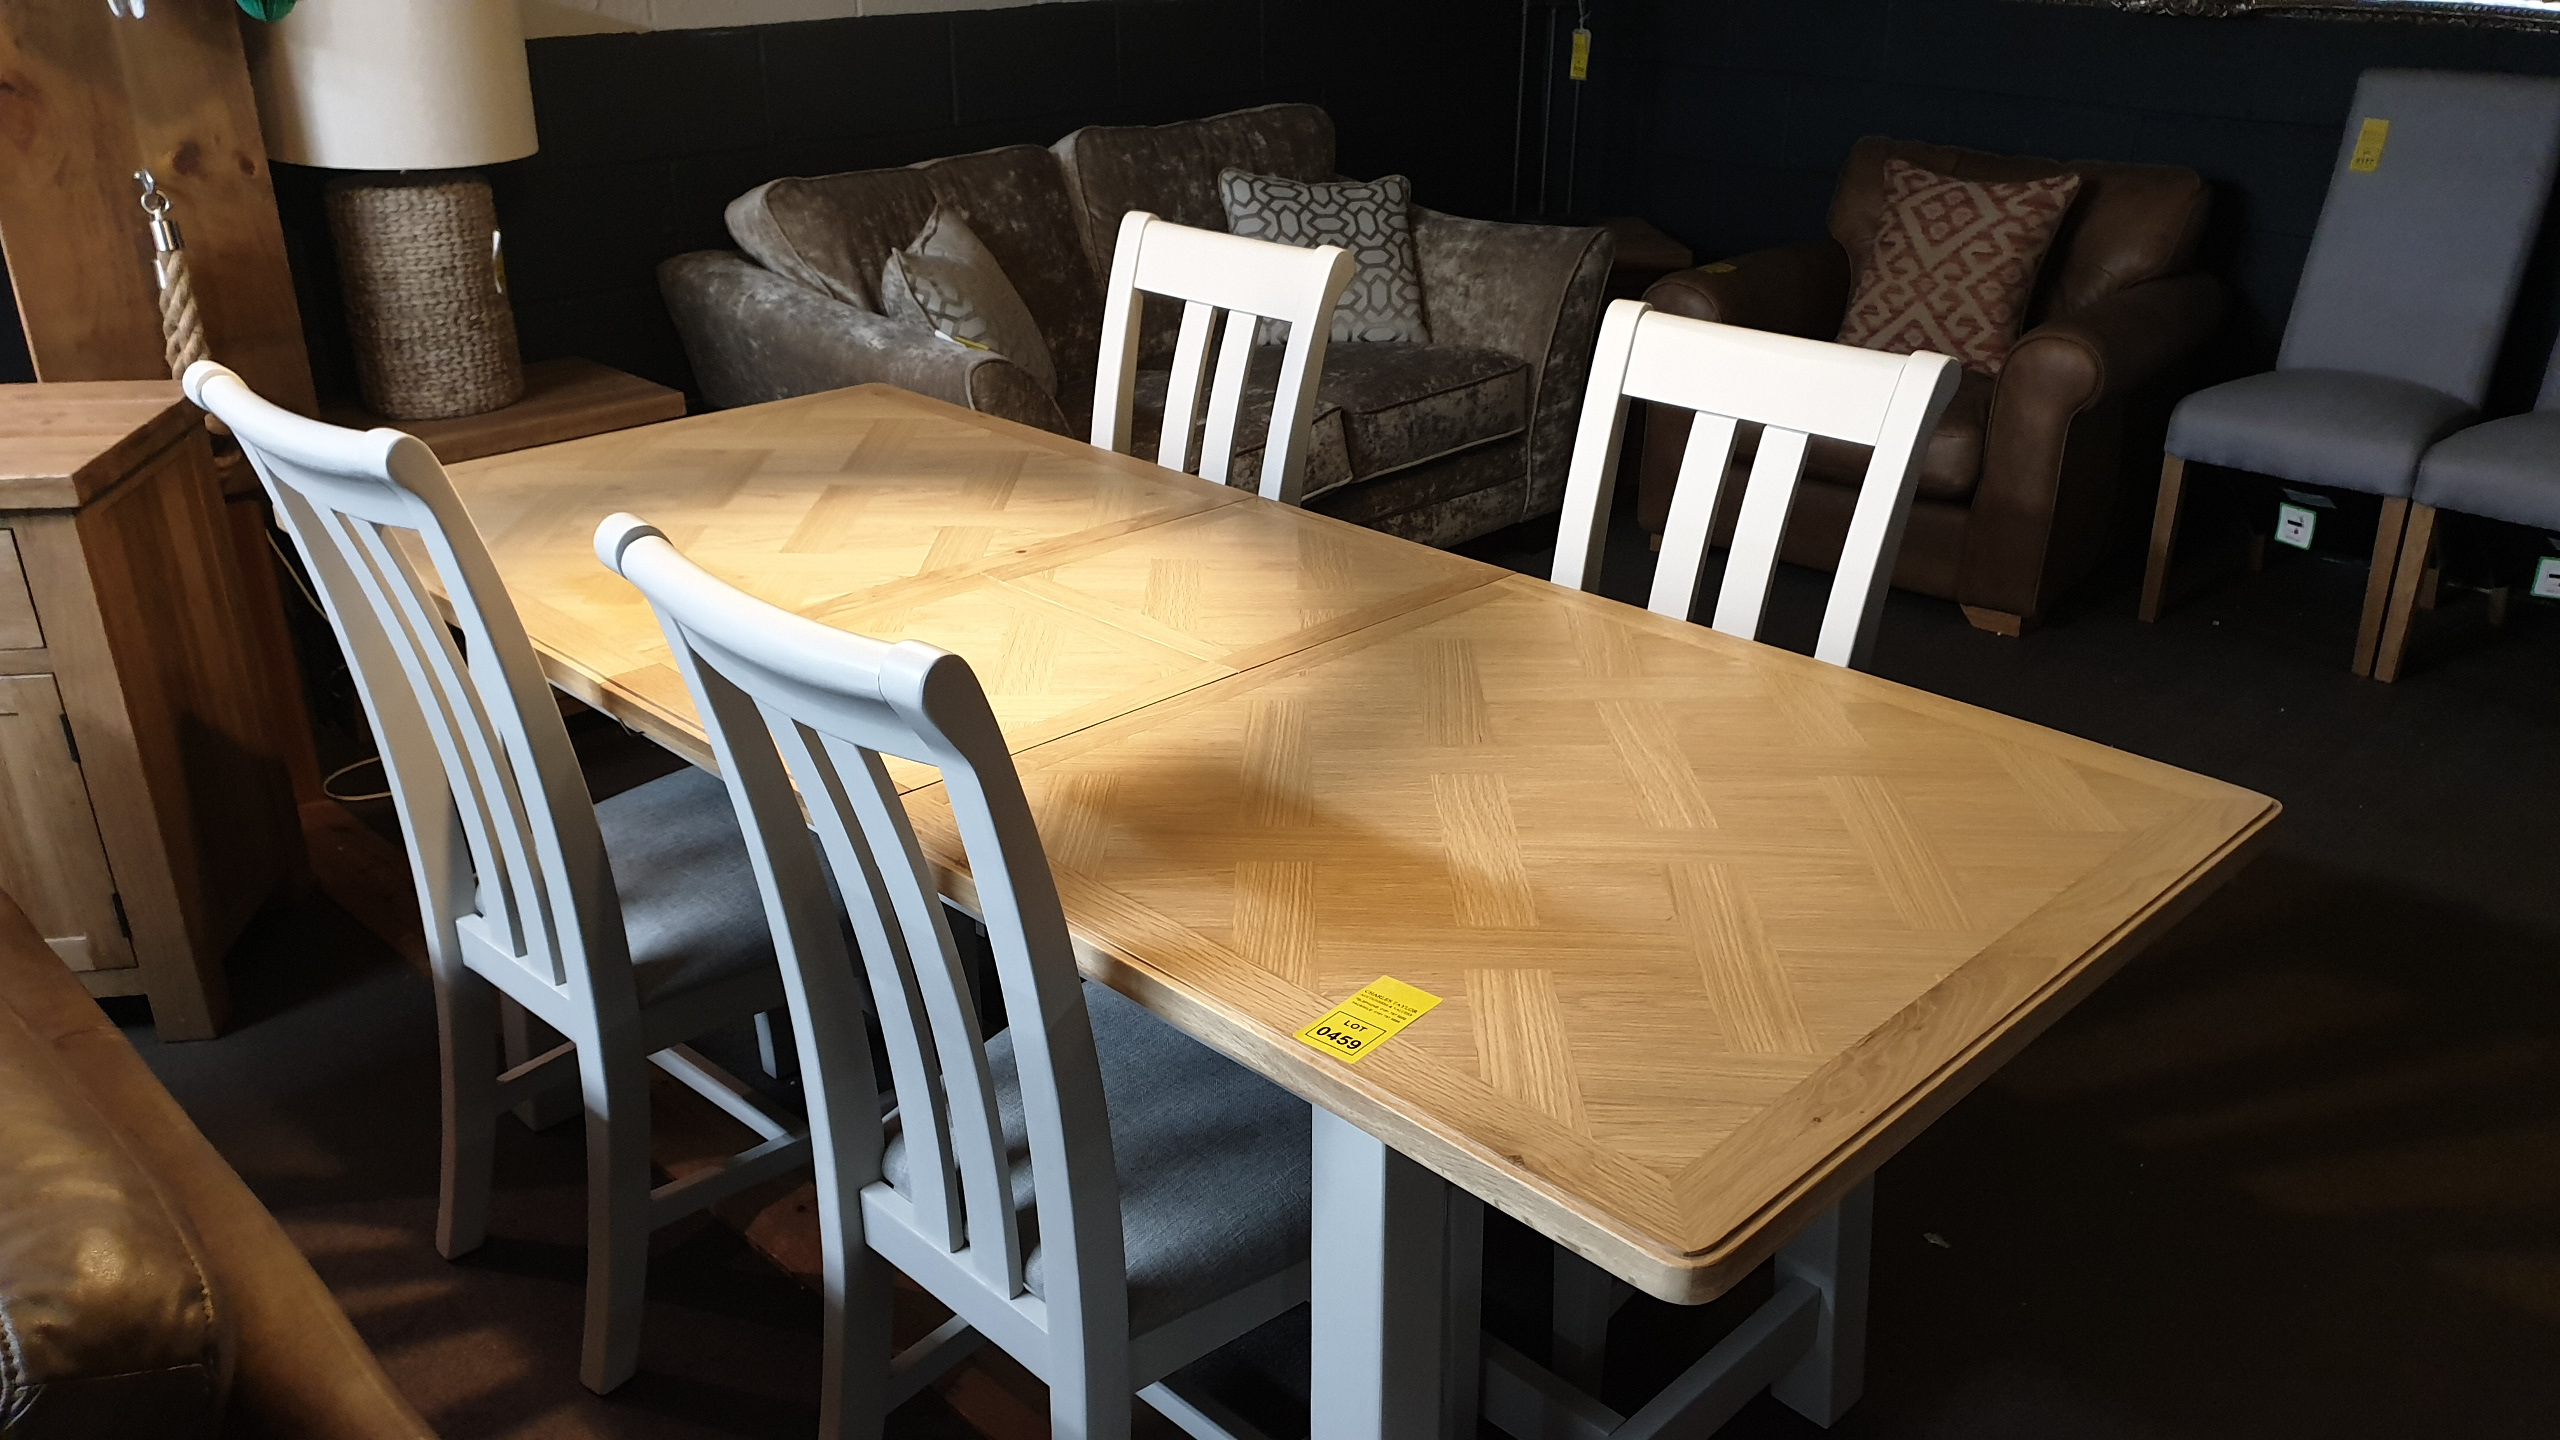 Lote 459 - GEORGIA EXTENDING DINING TABLE WITH 4 CHAIRS RRP 750.00